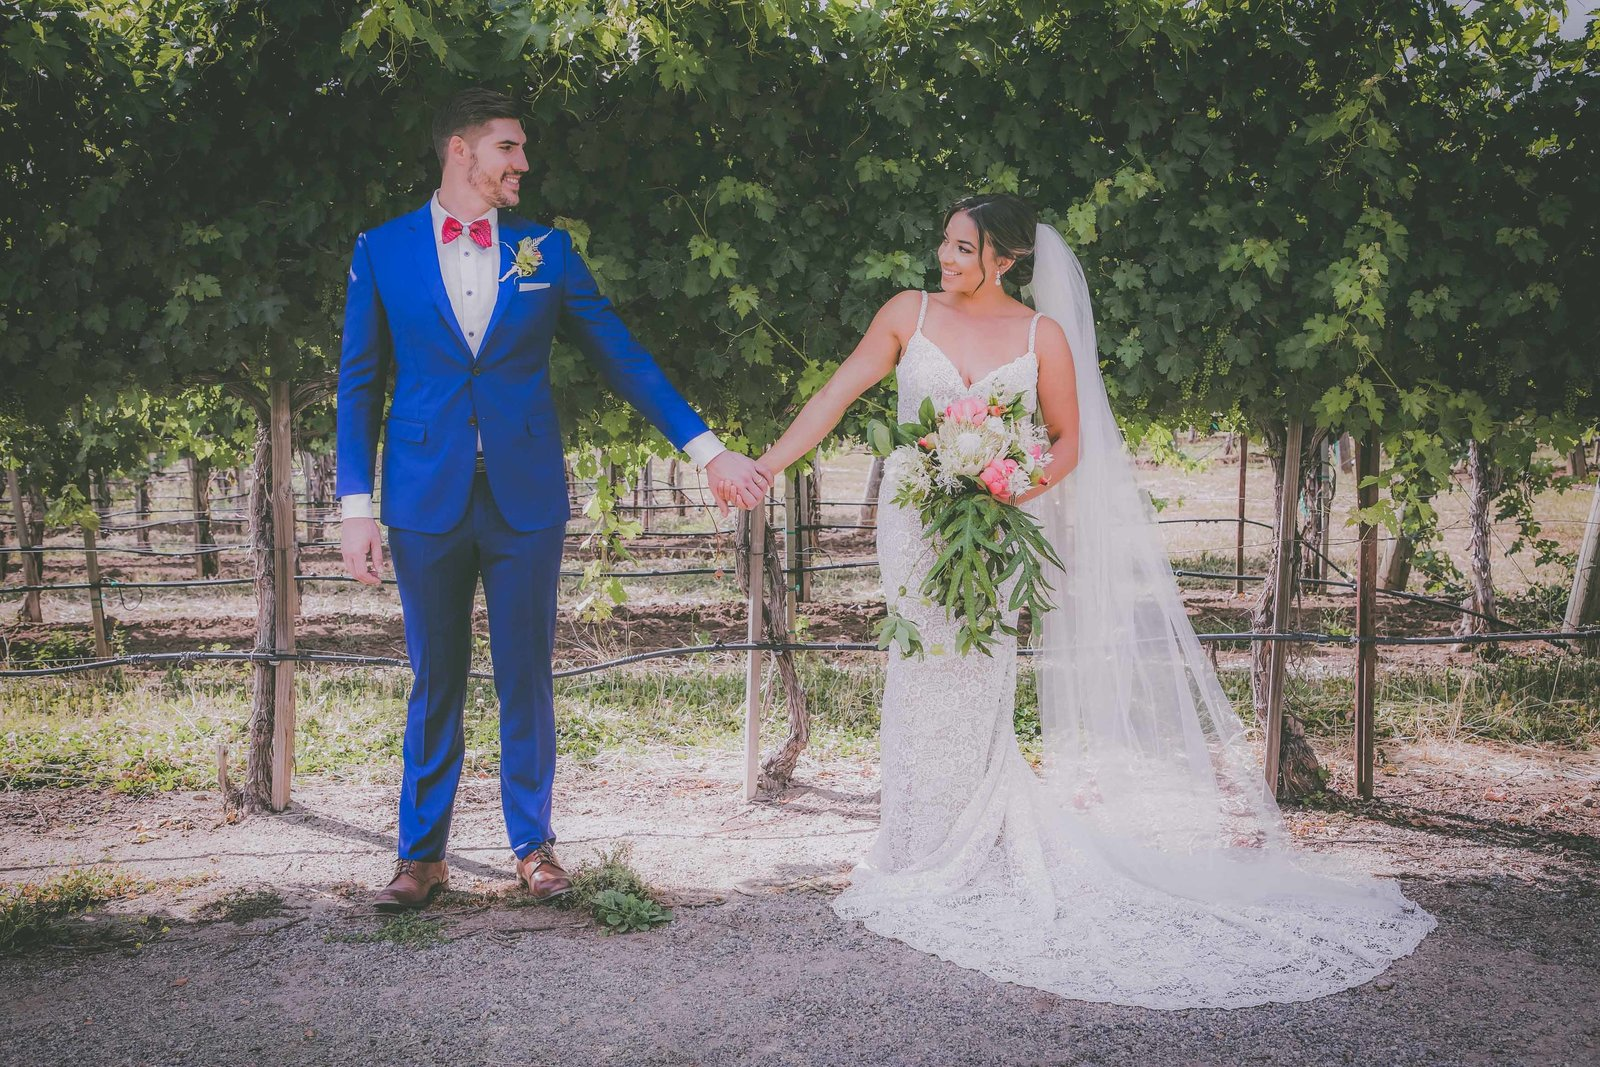 Groom and bride look and smile at each other while holding hands in California vineyard.